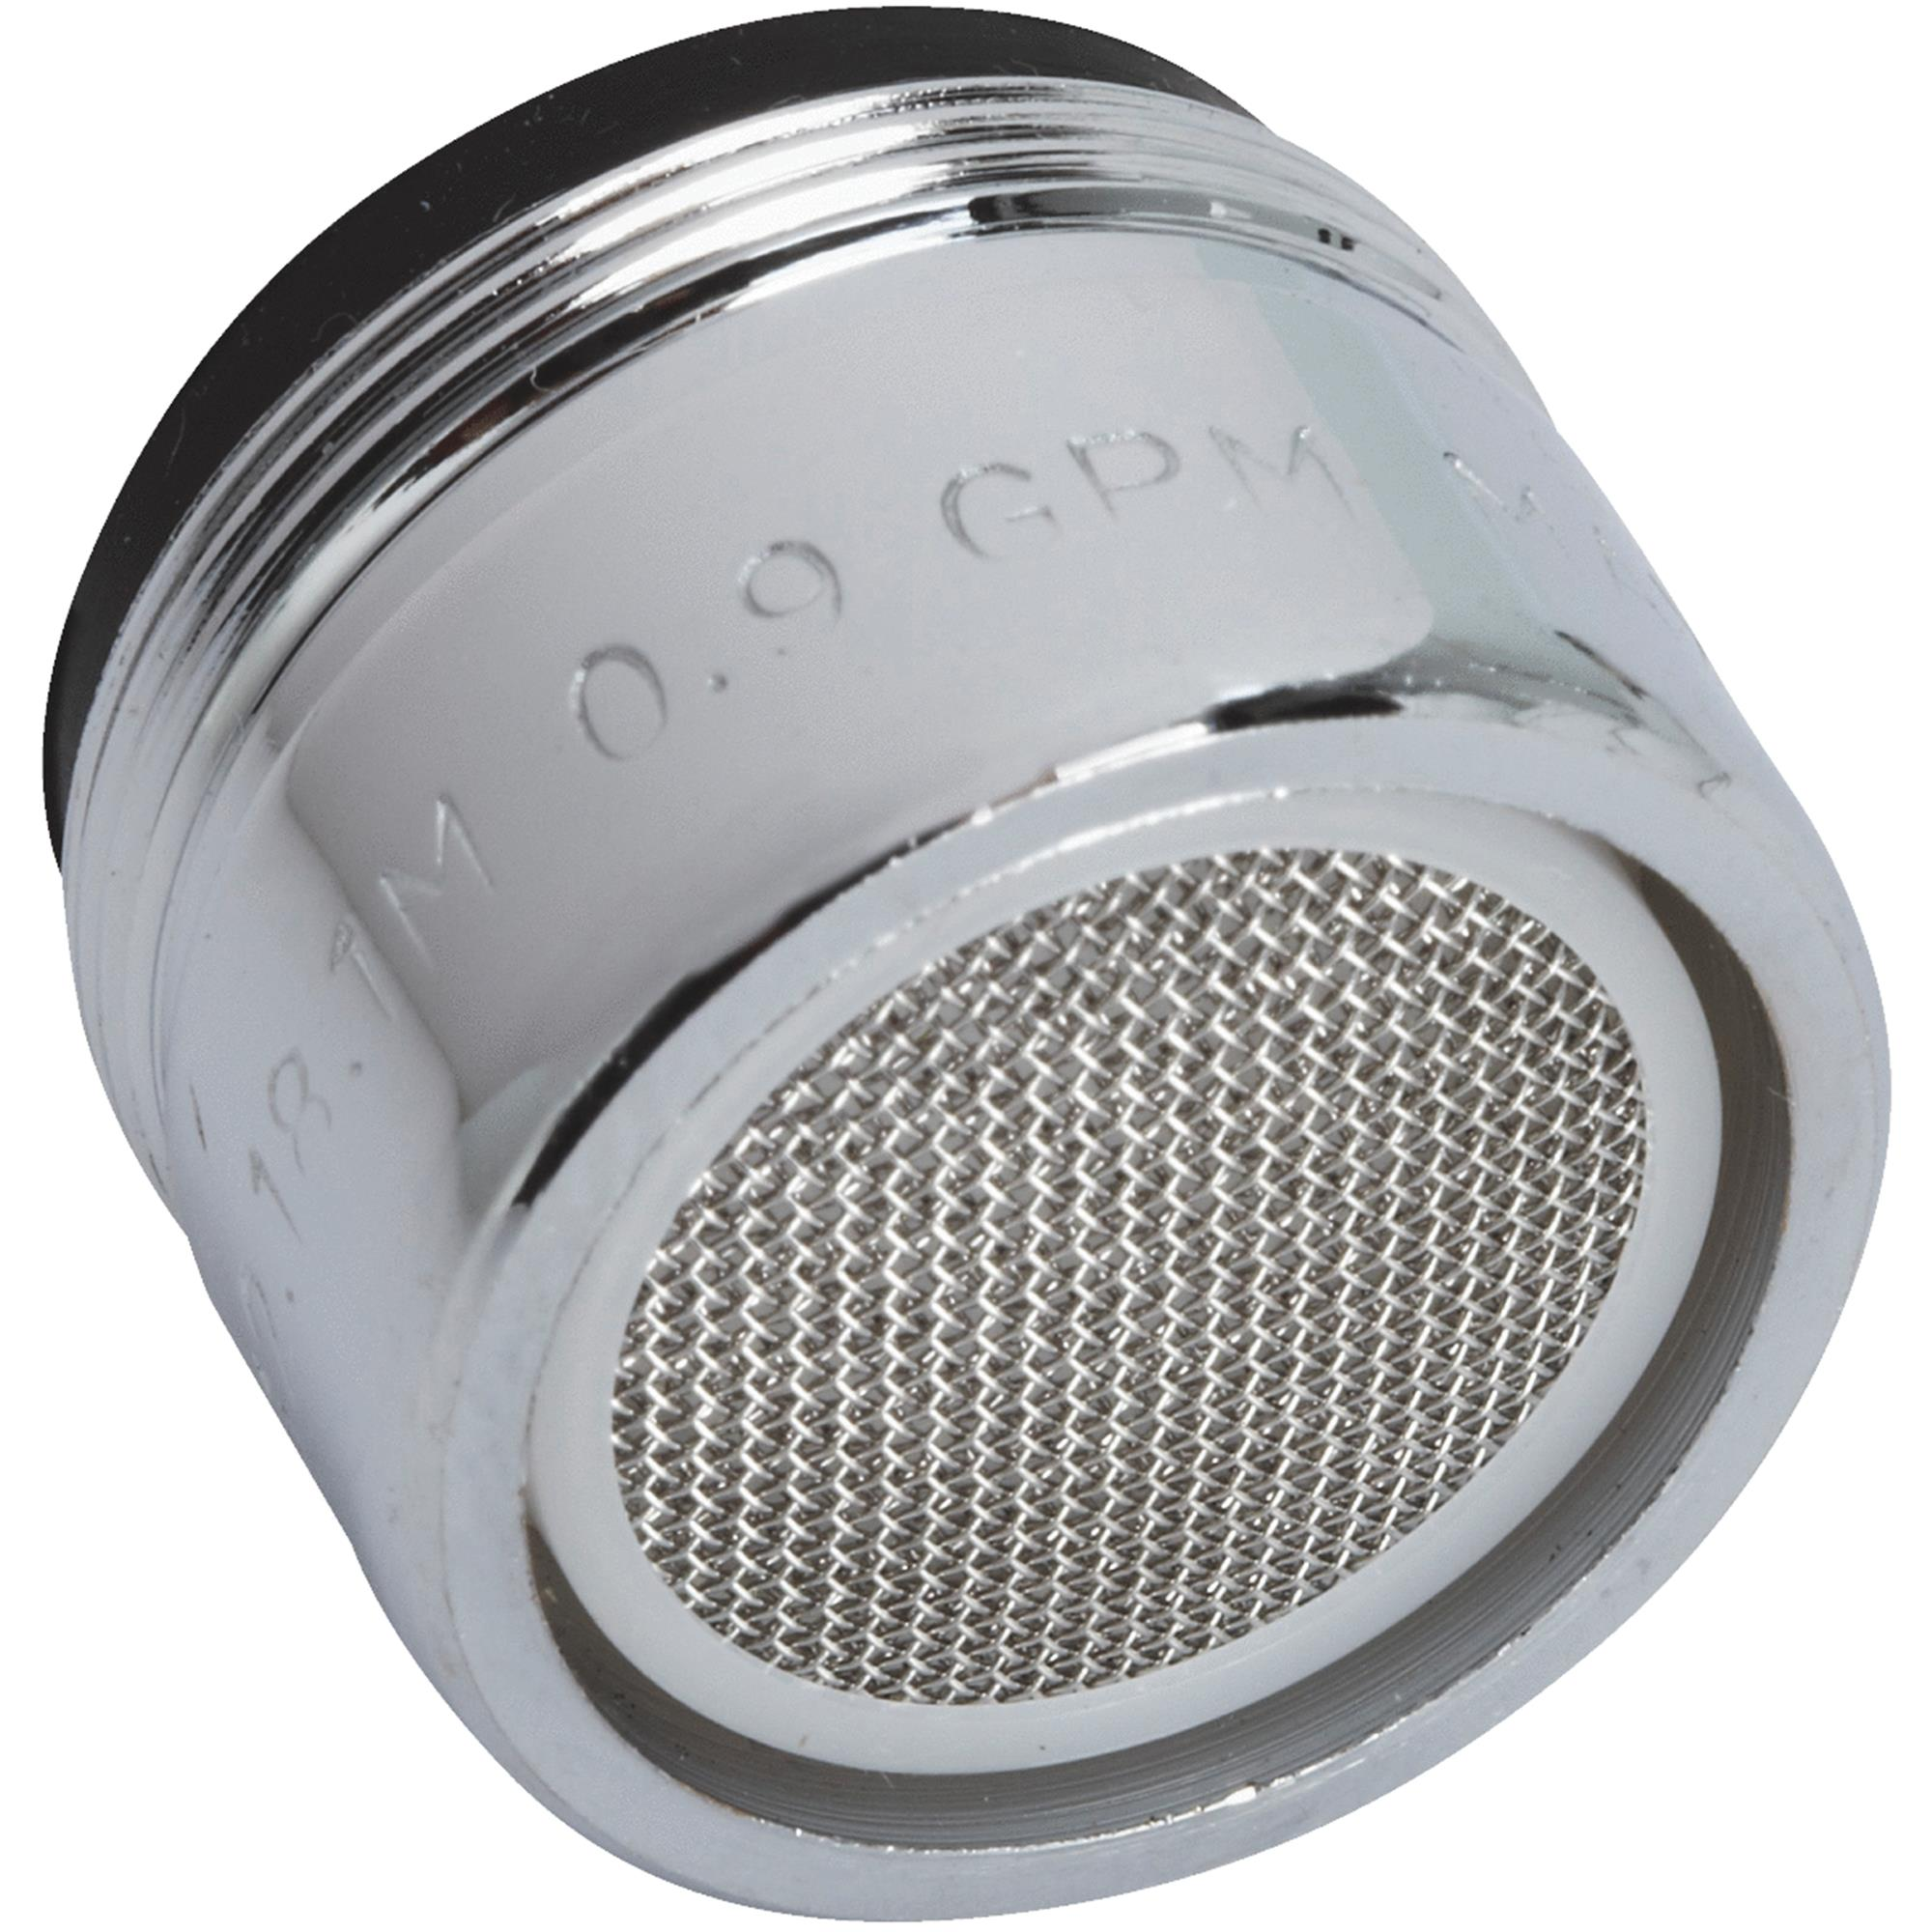 Universal 0.9 GPM Water Saver Faucet Aerator